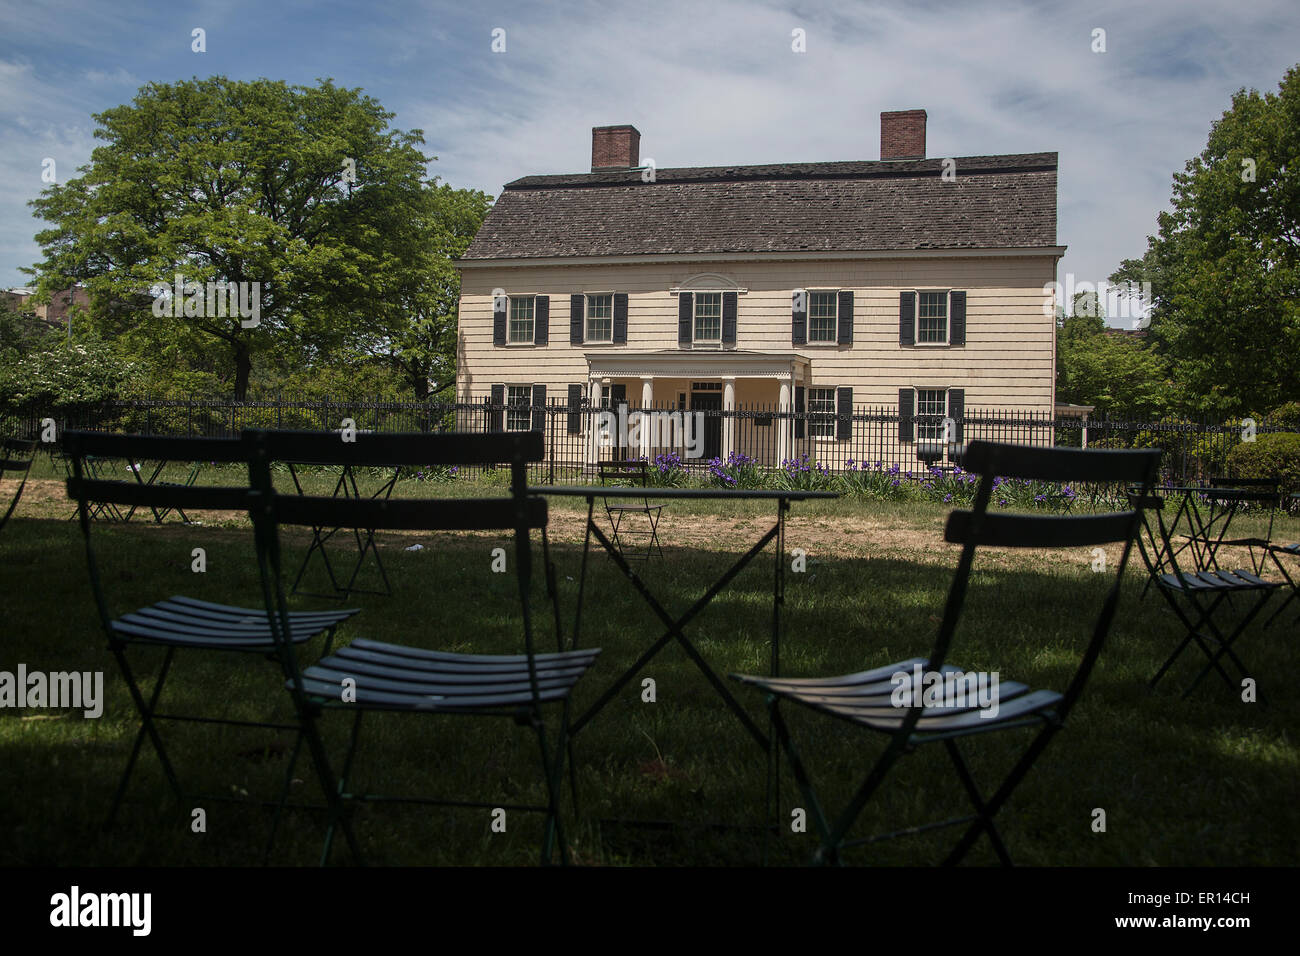 This farmhouse was home to Rufus king,signer of the U.S. Constitution and outspoken opponent of slavery. - Stock Image